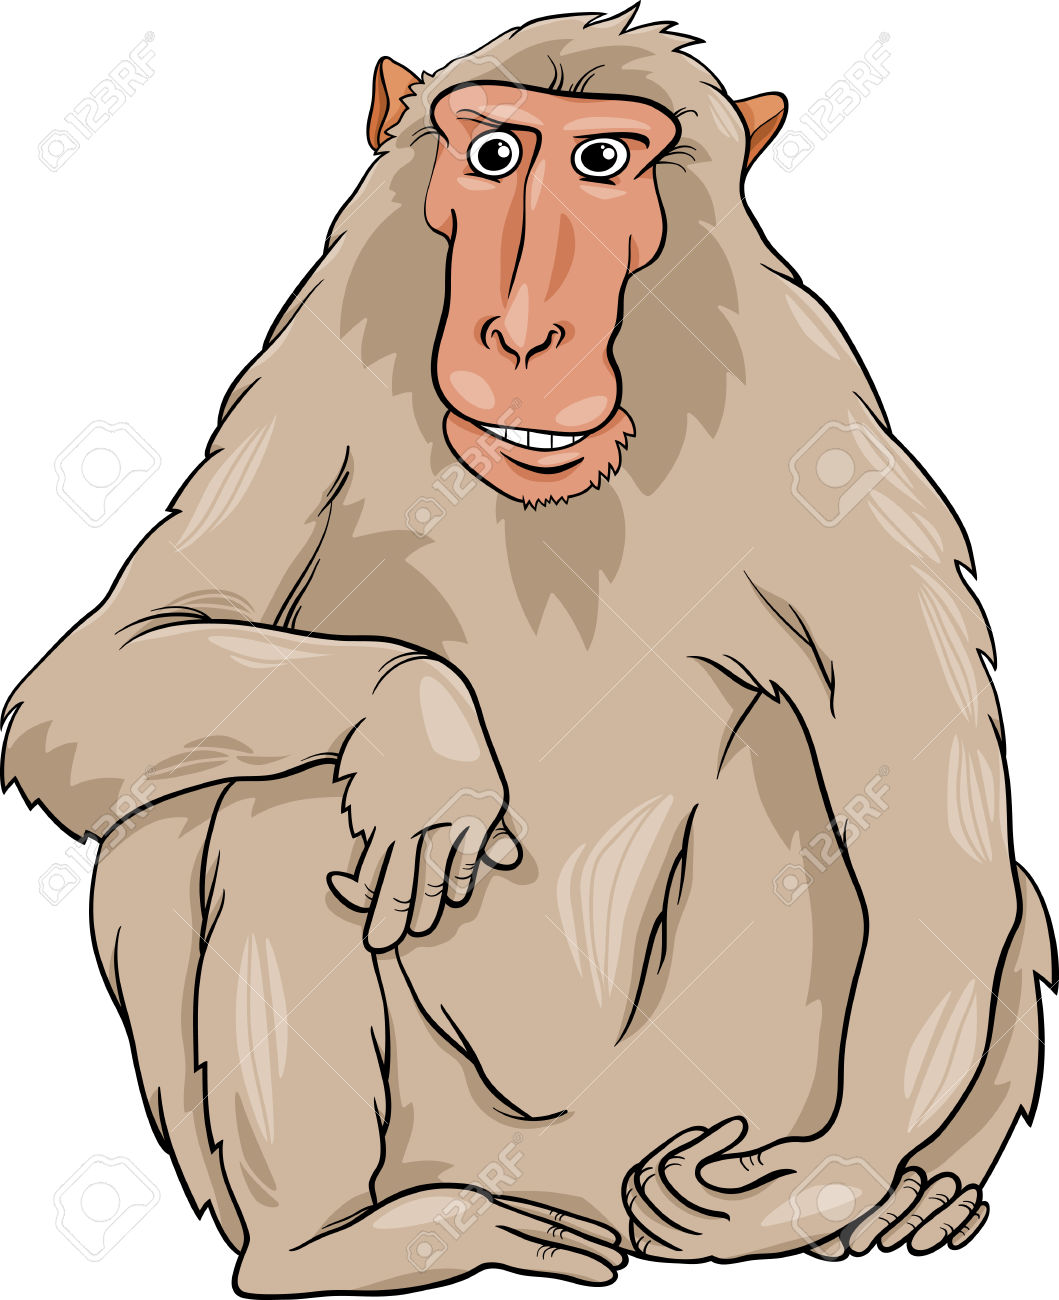 Cartoon Illustration Of Funny Macaque Monkey Primate Animal.